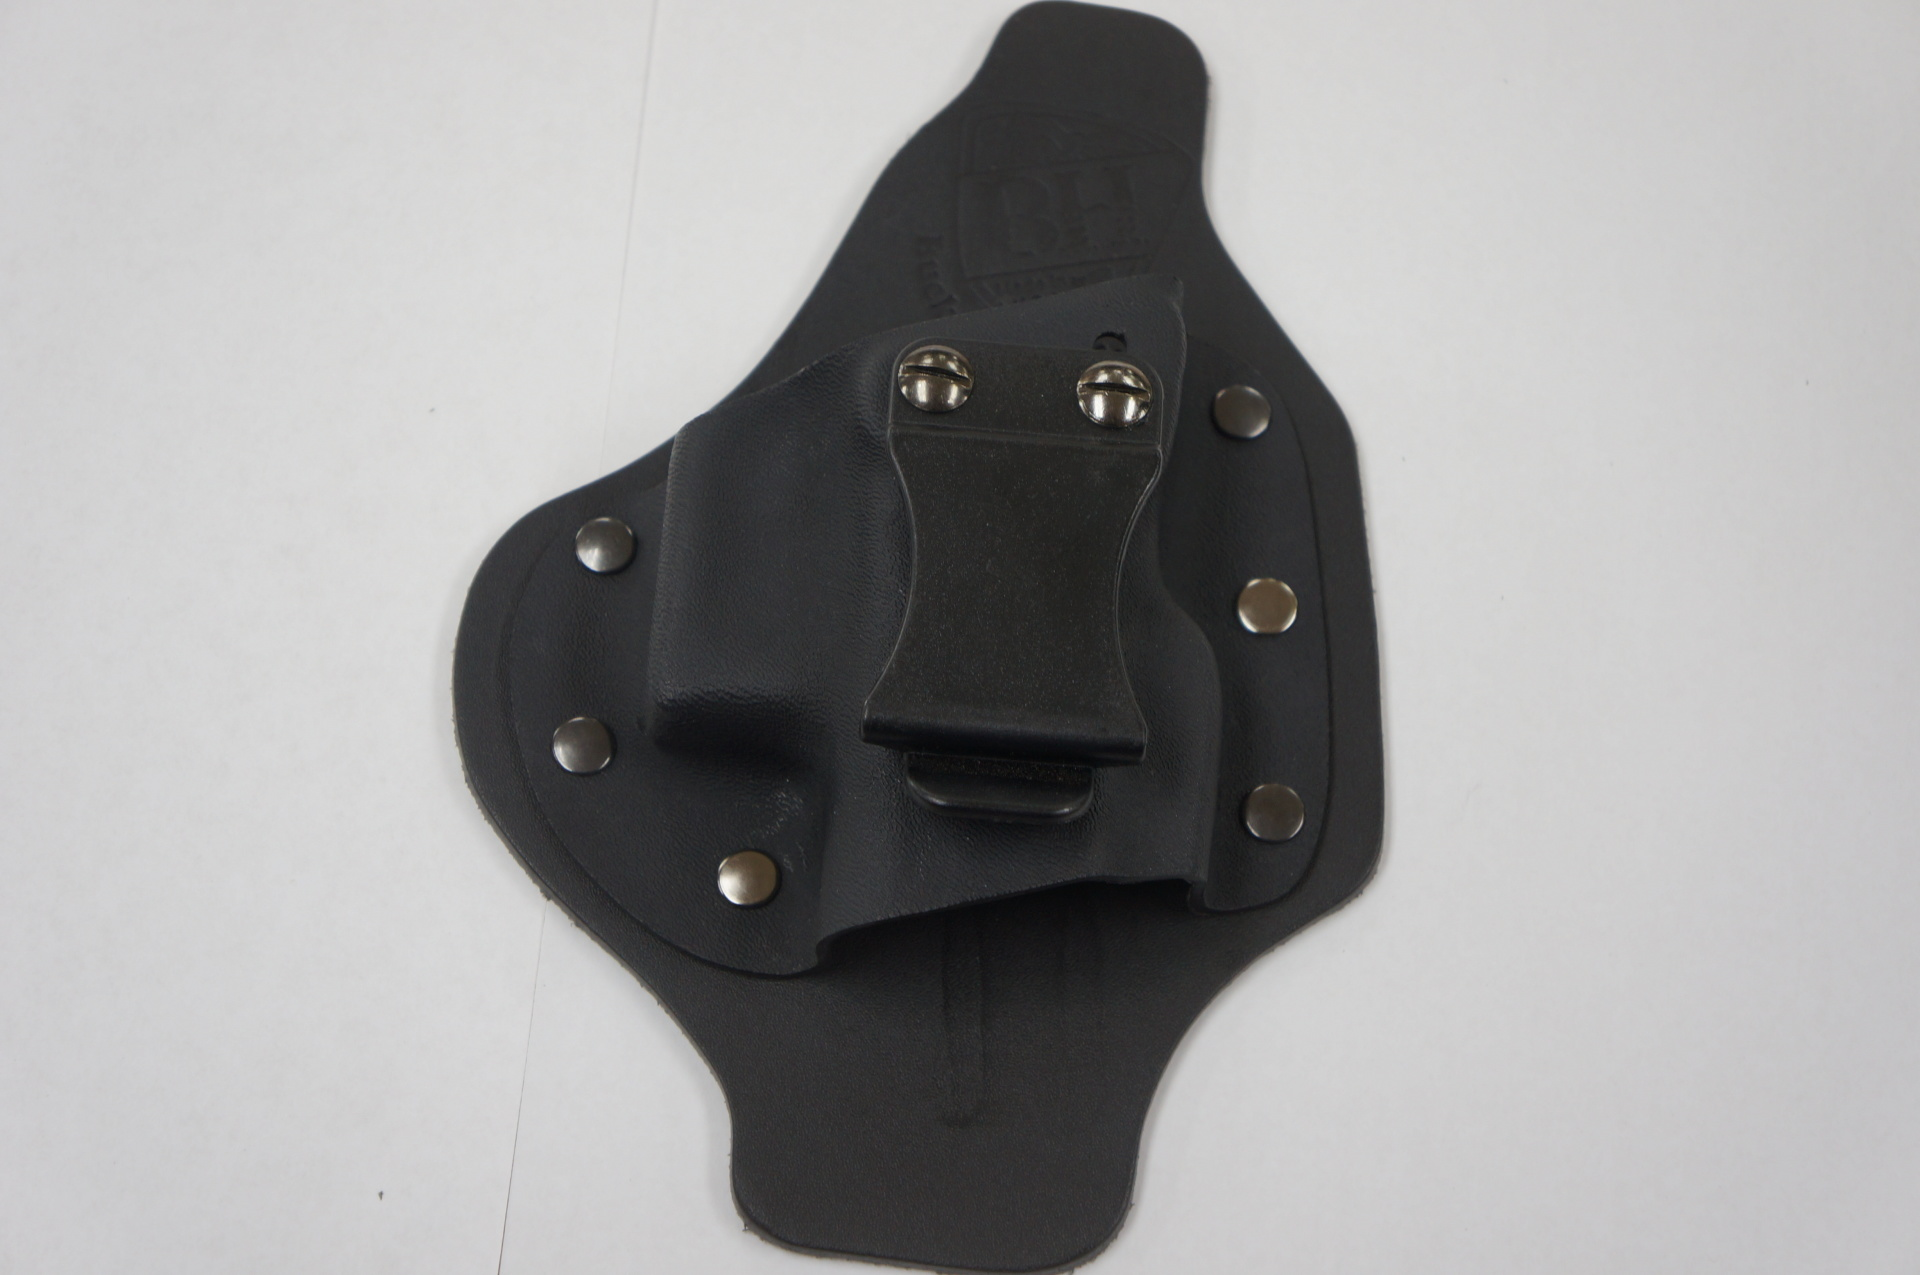 IWB holsters, best holster, holsters for sale, tuckable holsters, premium leather holster, firearm holsters, gun holster